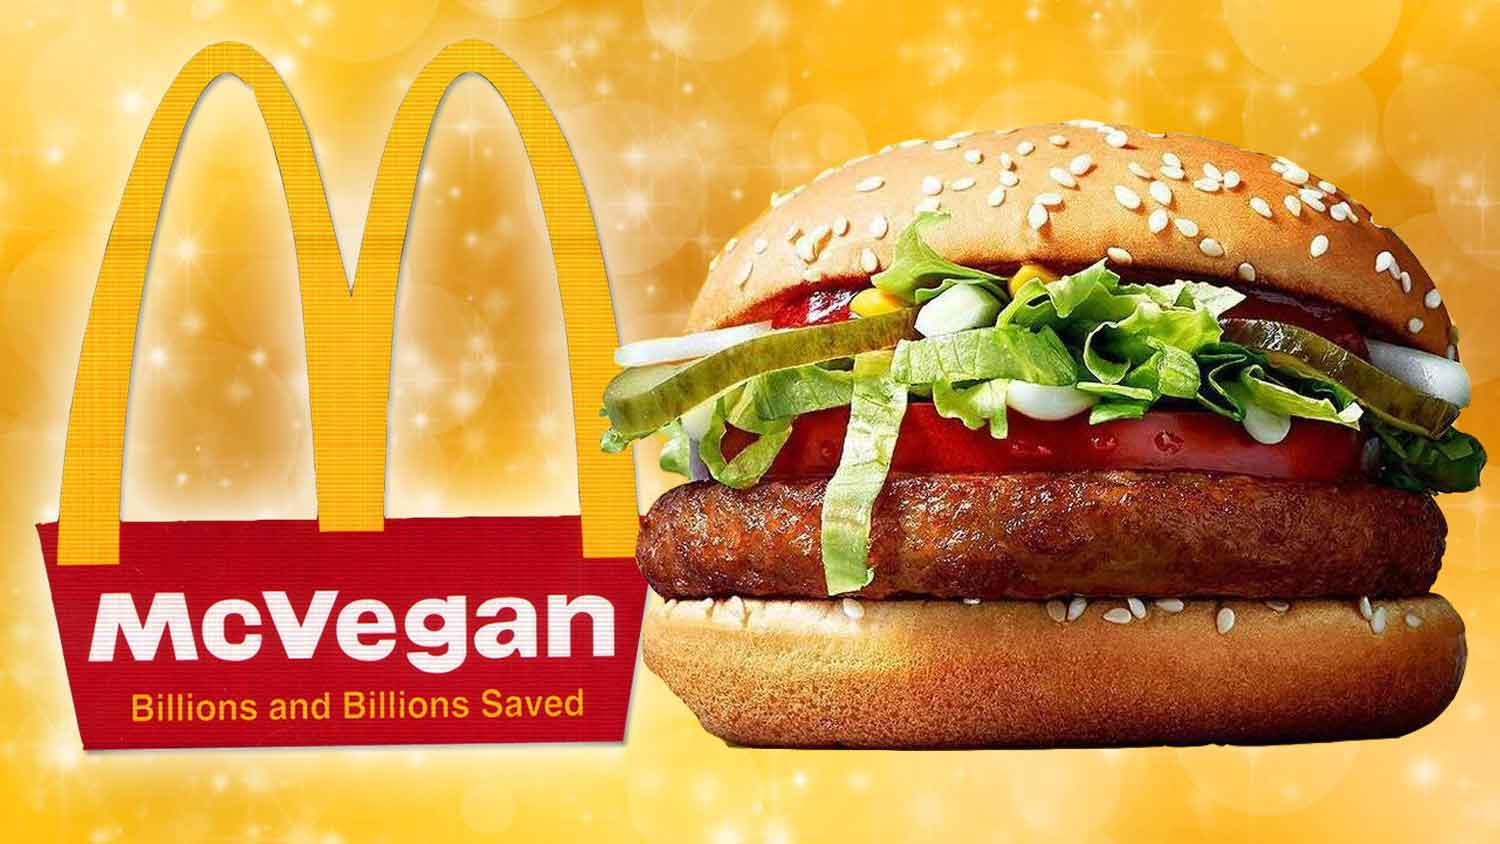 Mcdonalds To Launch New Vegan Options In Australia Livekindly